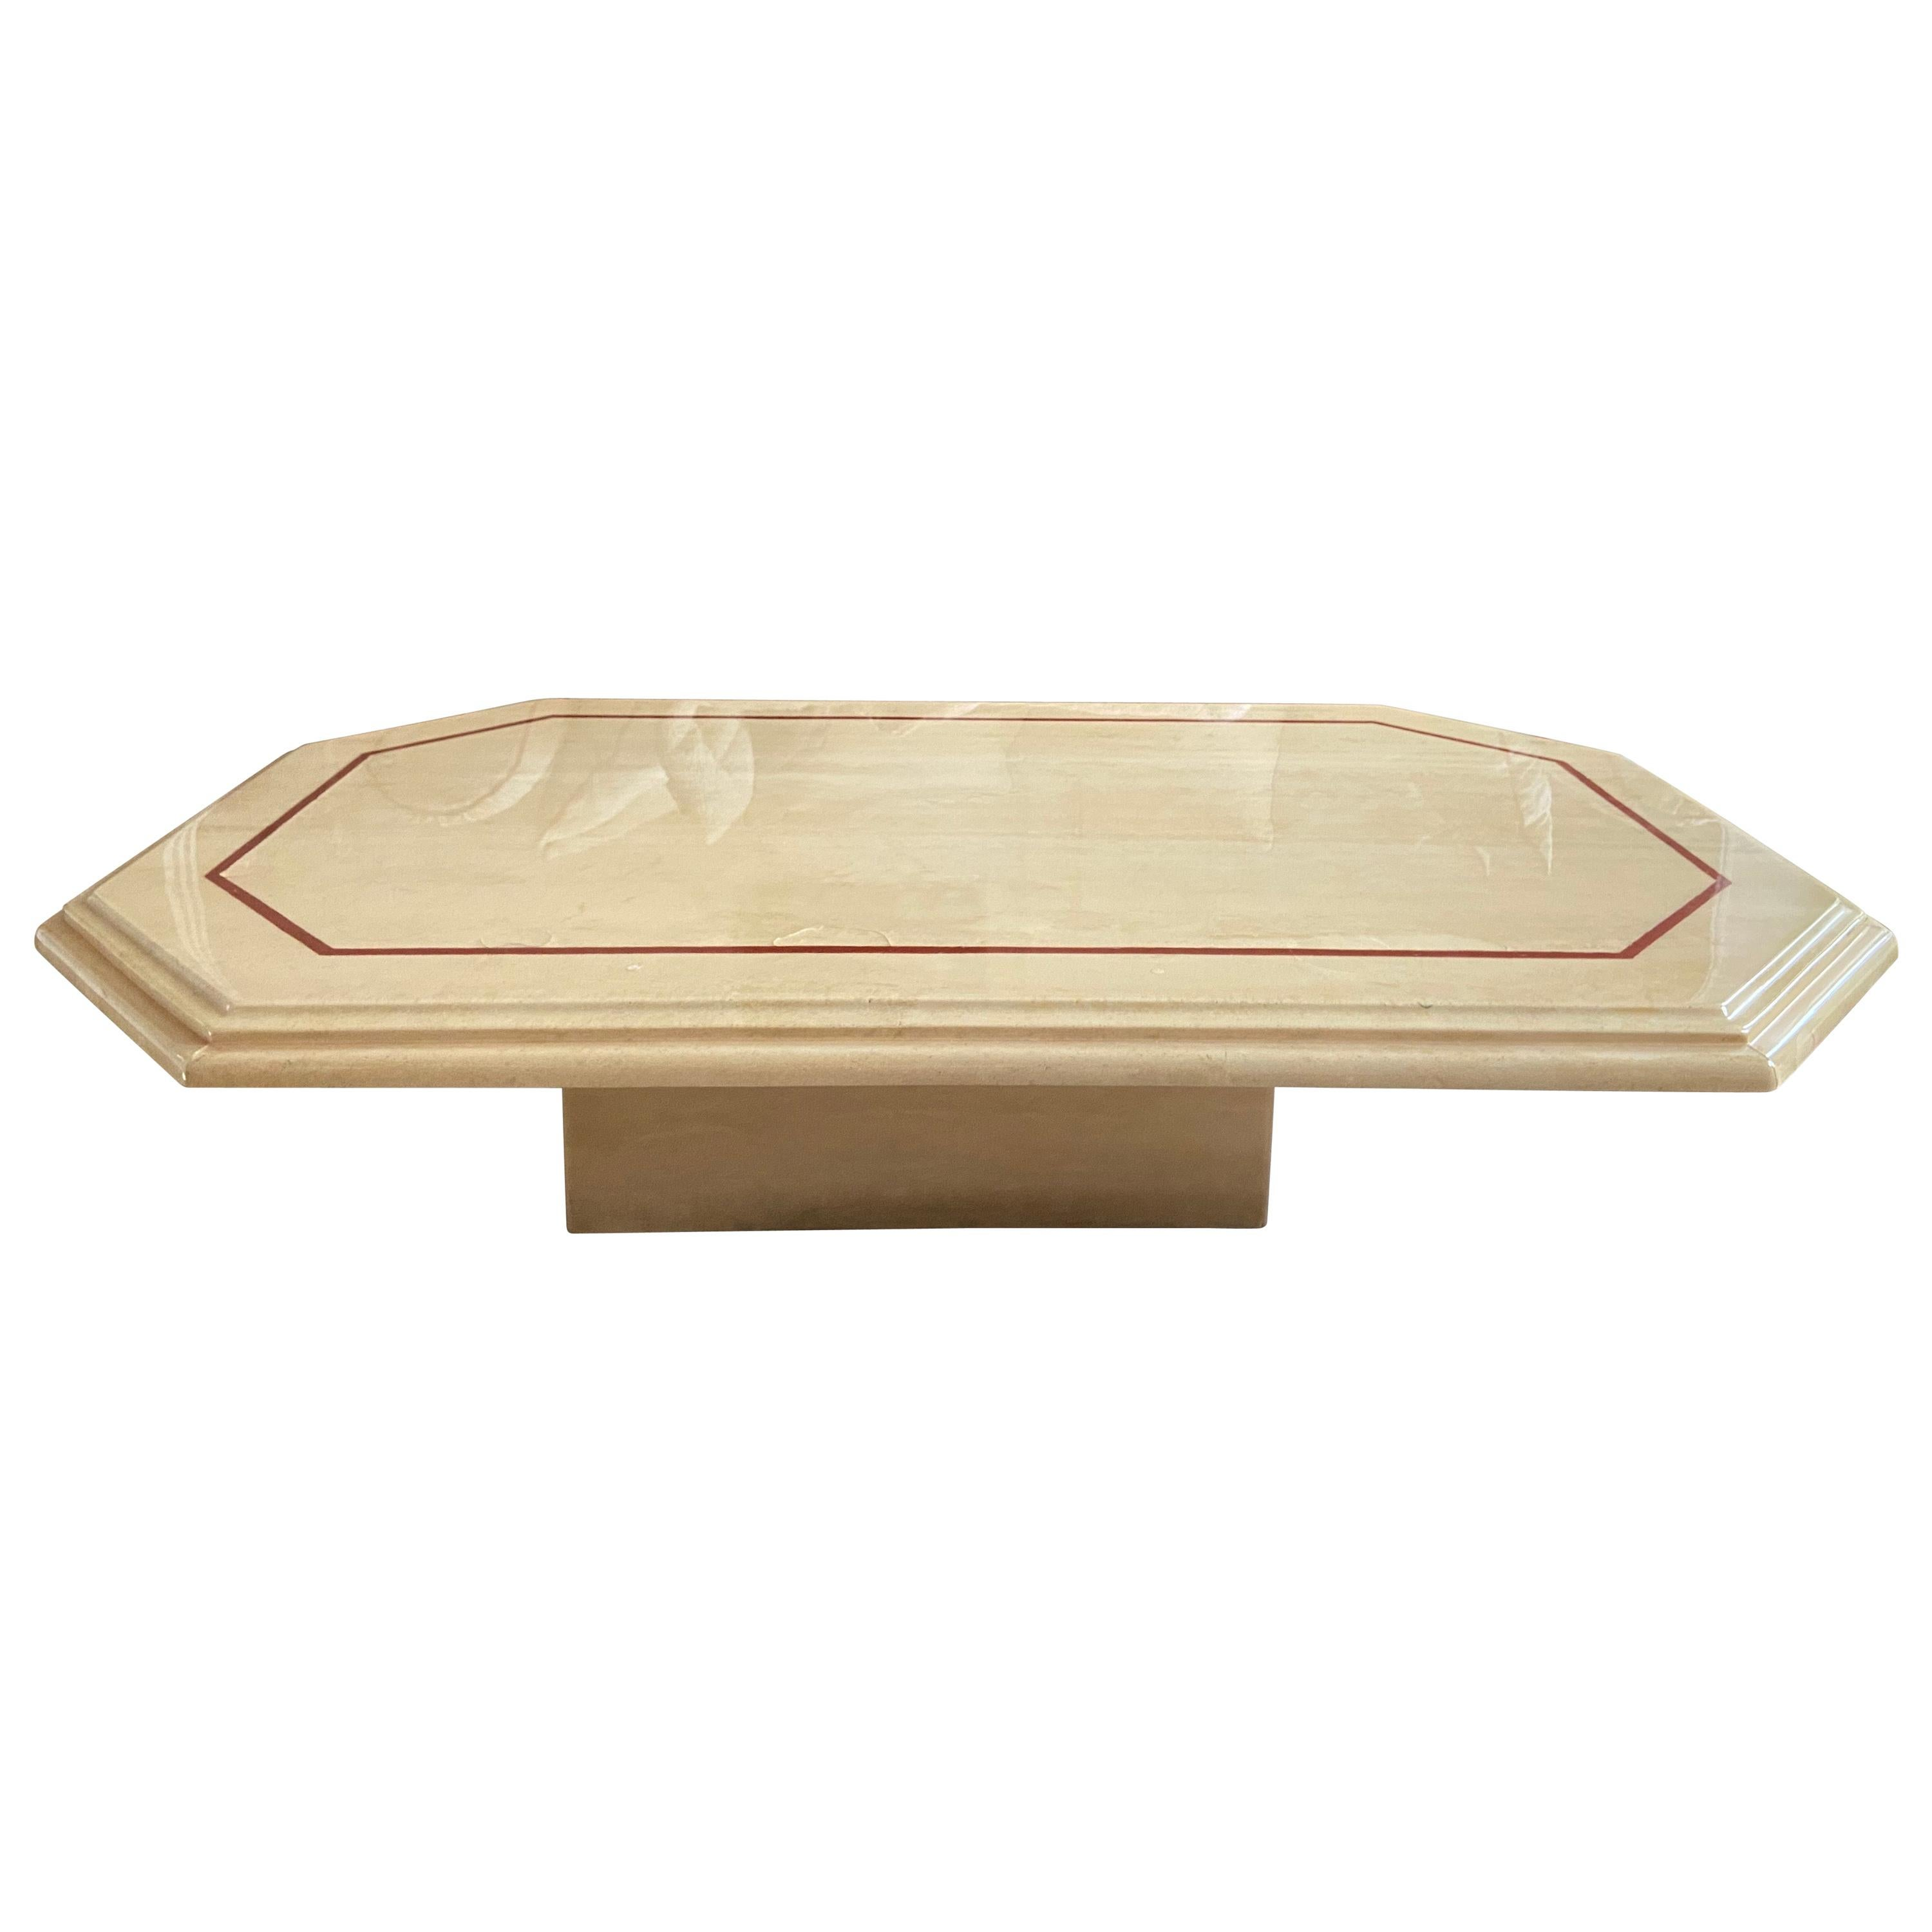 Travertine Marble Set of Large and Small Coffee Tables by Roche Bobois, 1980s